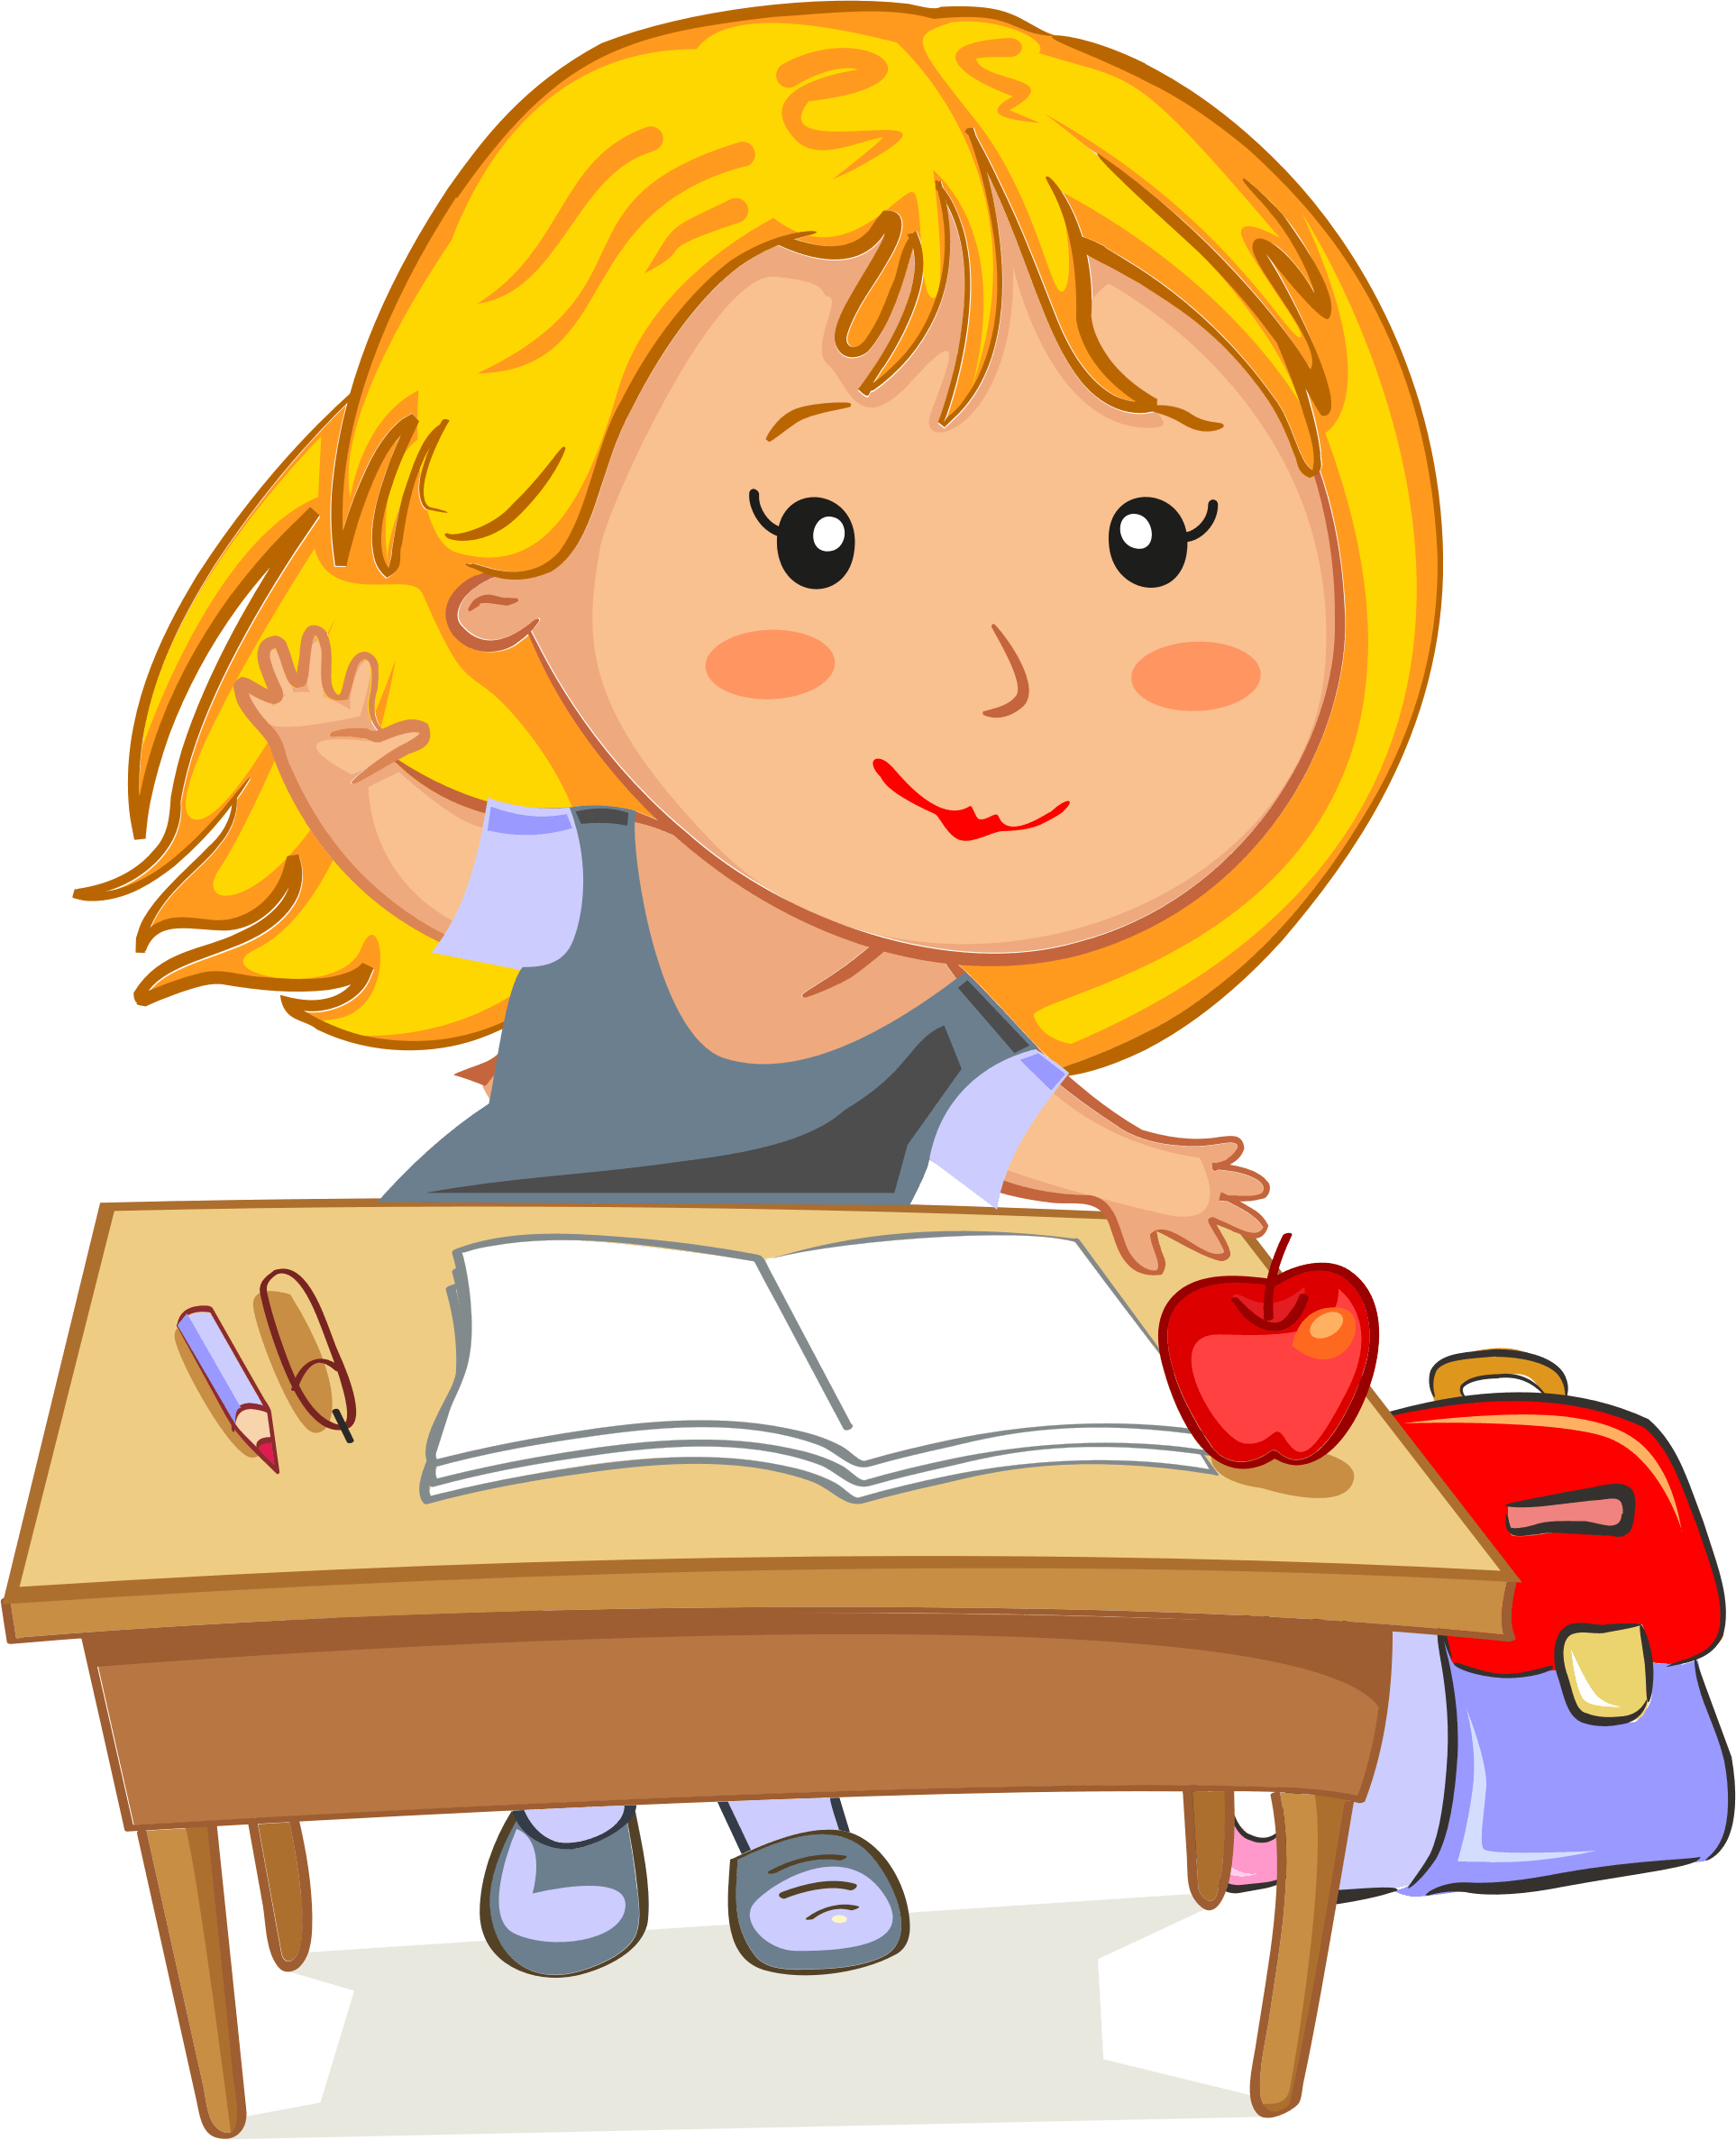 Nso science olympiad sof. Psychology clipart verbal reasoning